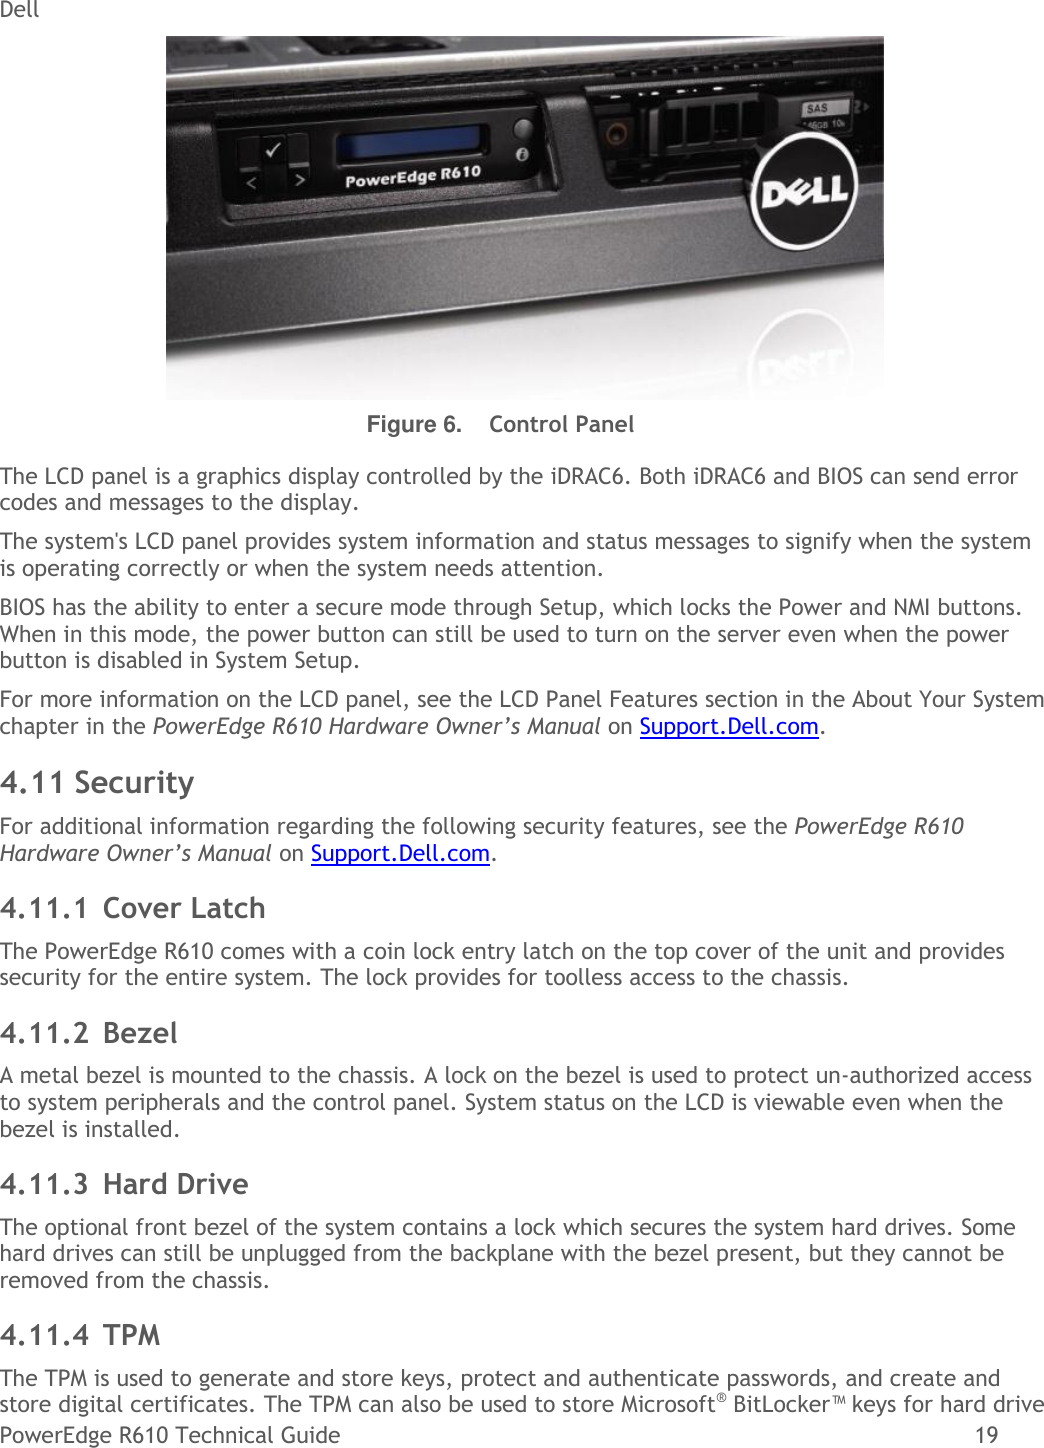 Dell If Not Then Server poweredge r610 tech guidebook